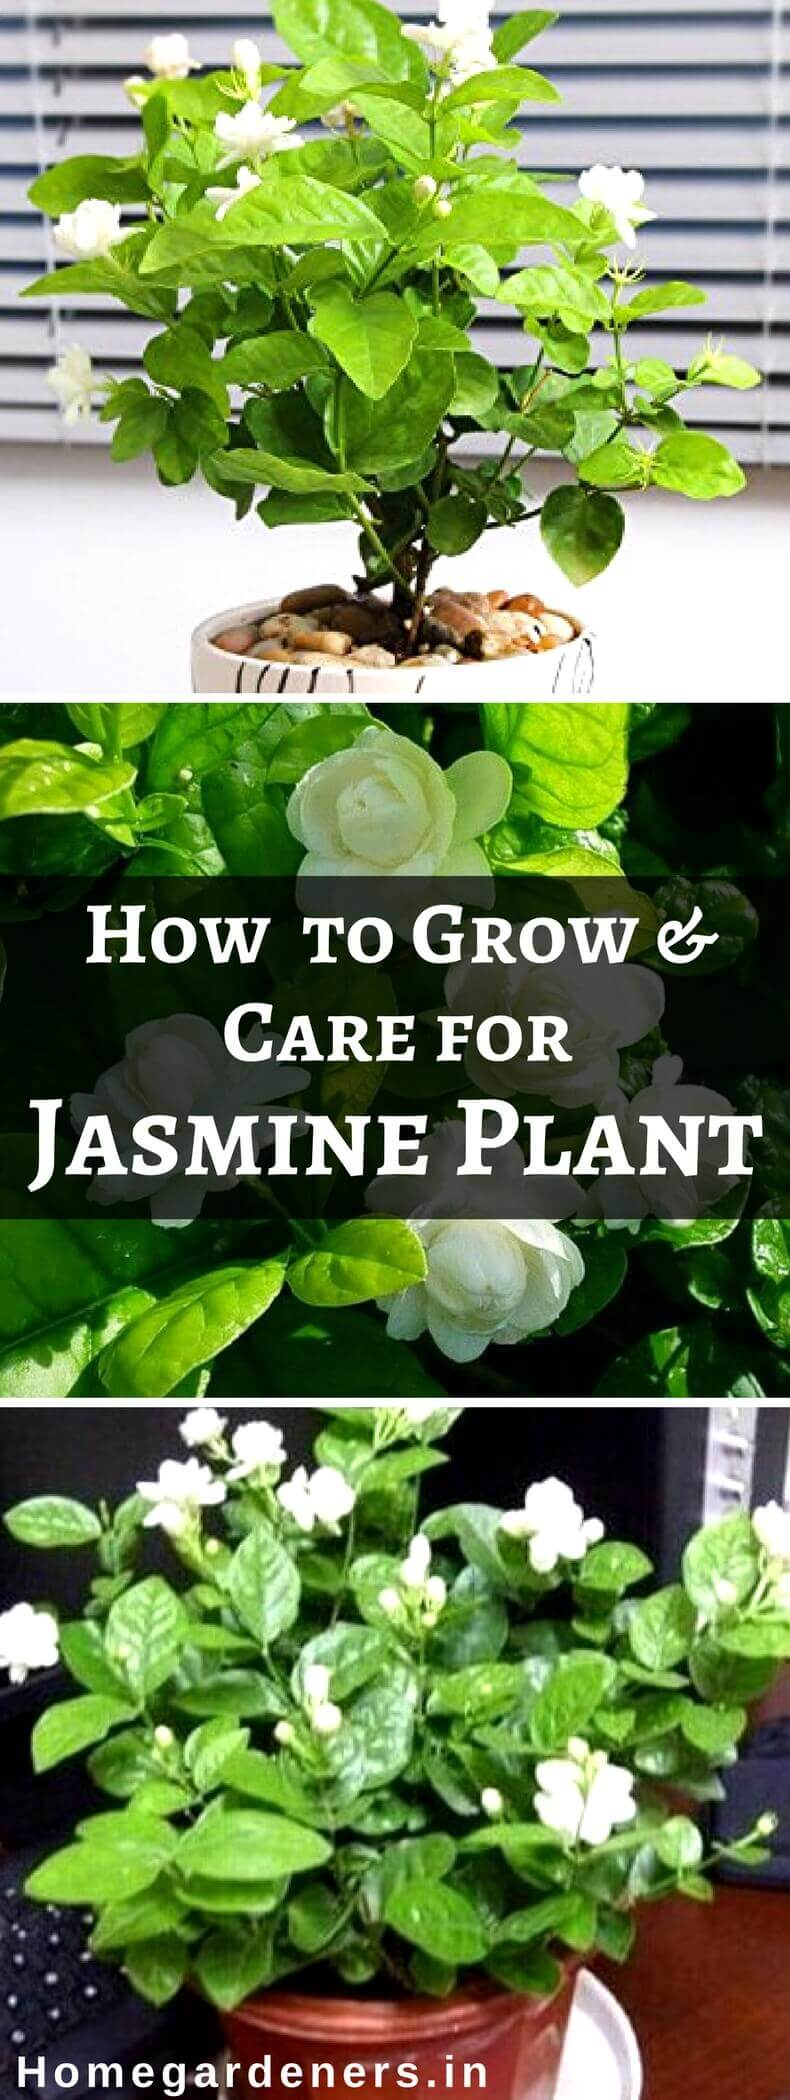 How To Grow And Care For Jasmine Plant Home Gardeners